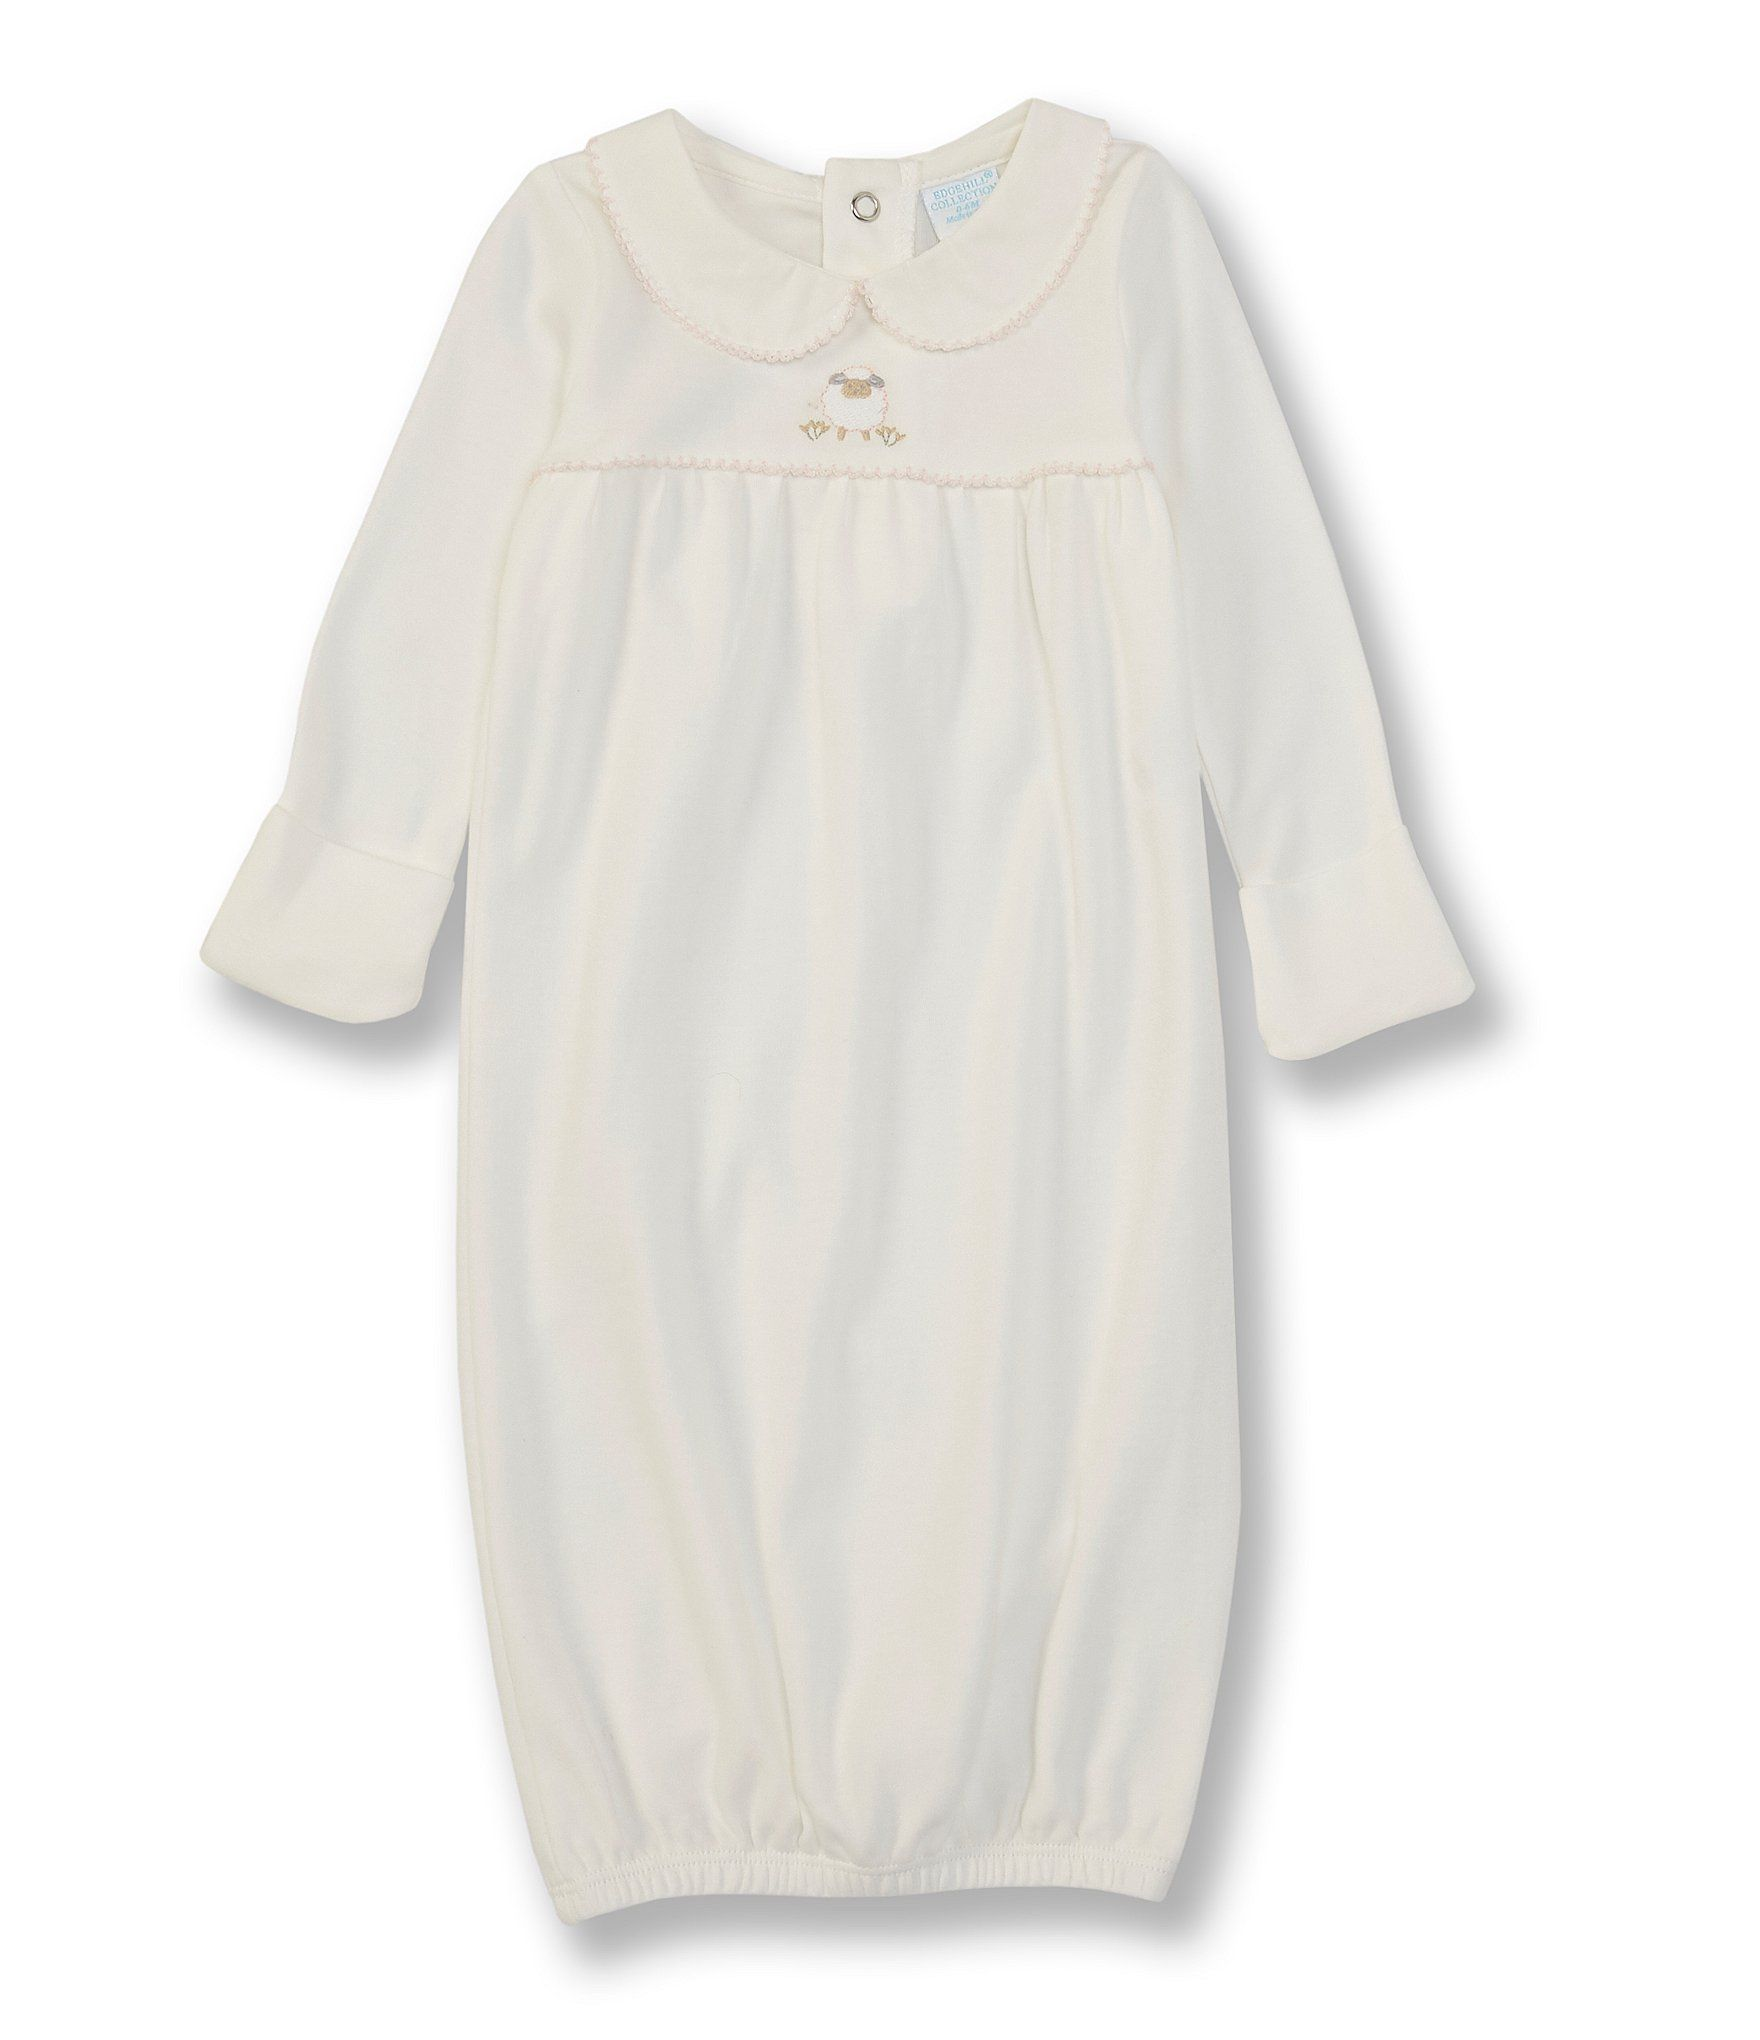 Edgehill Collection Baby Girls Newborn-6 Months Long-Sleeve Sheep Embroidered Gown -  0/6 Months